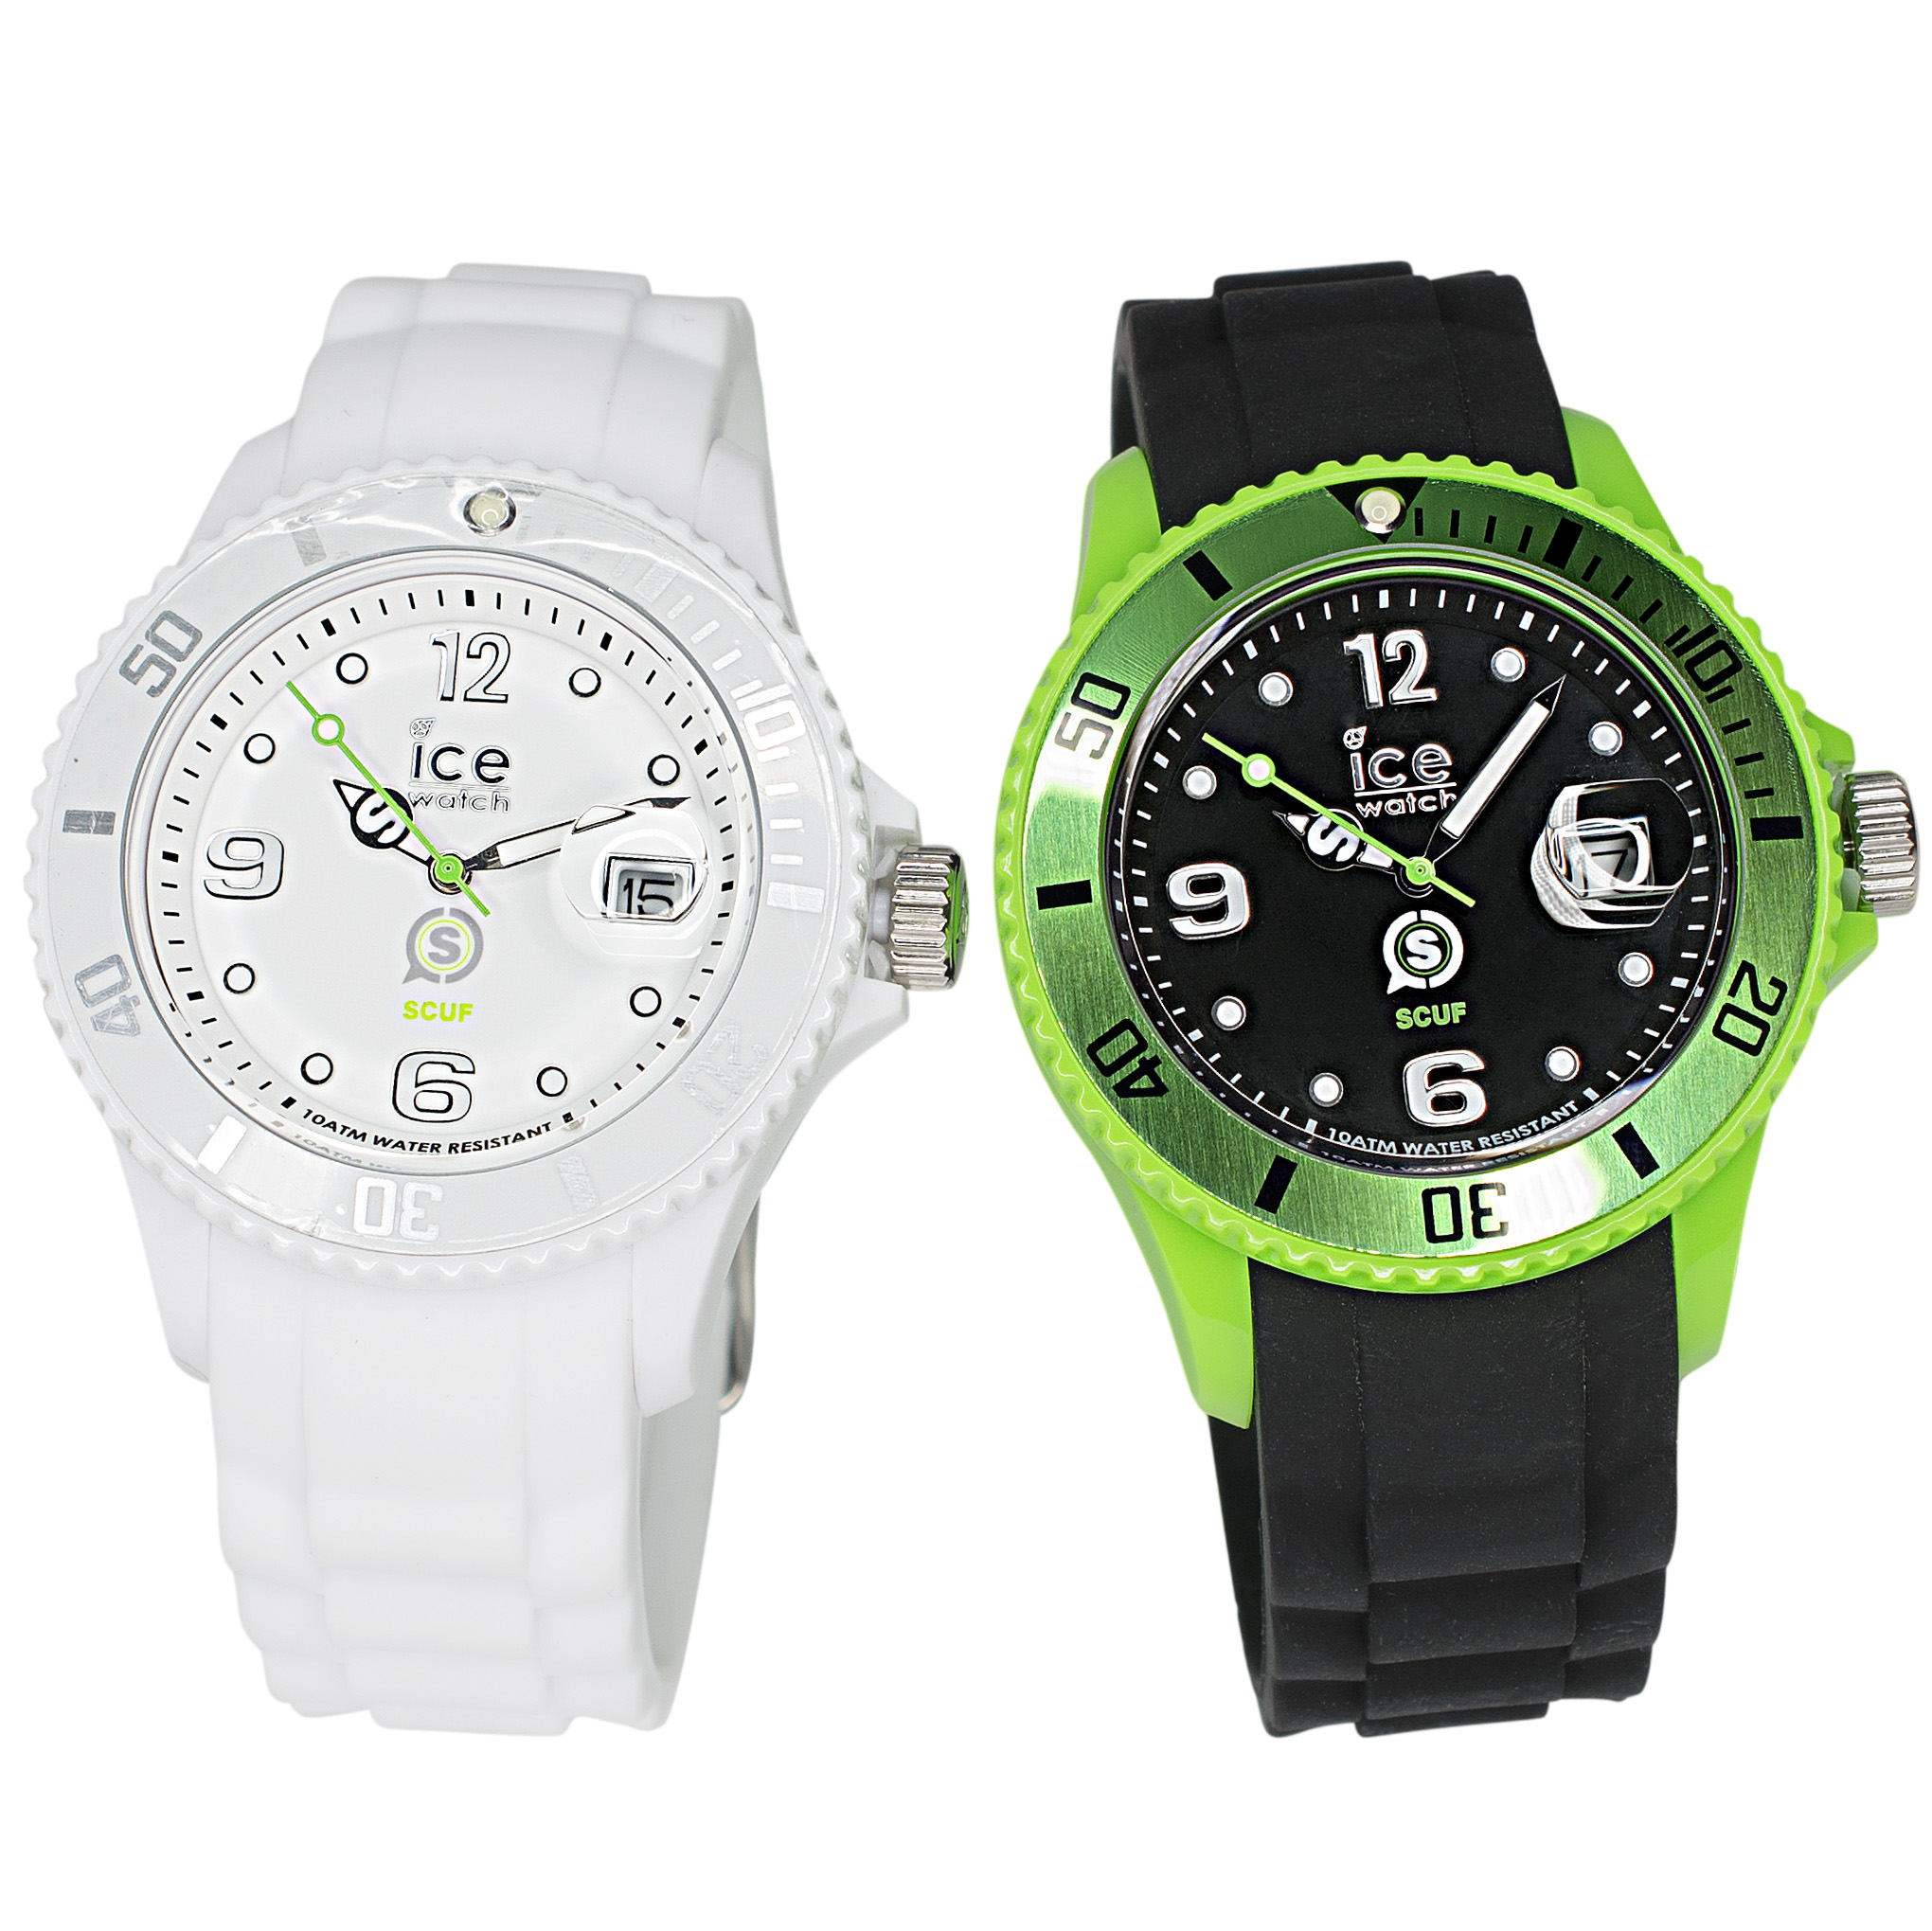 SCUF-ice-watch-019-web-flat1